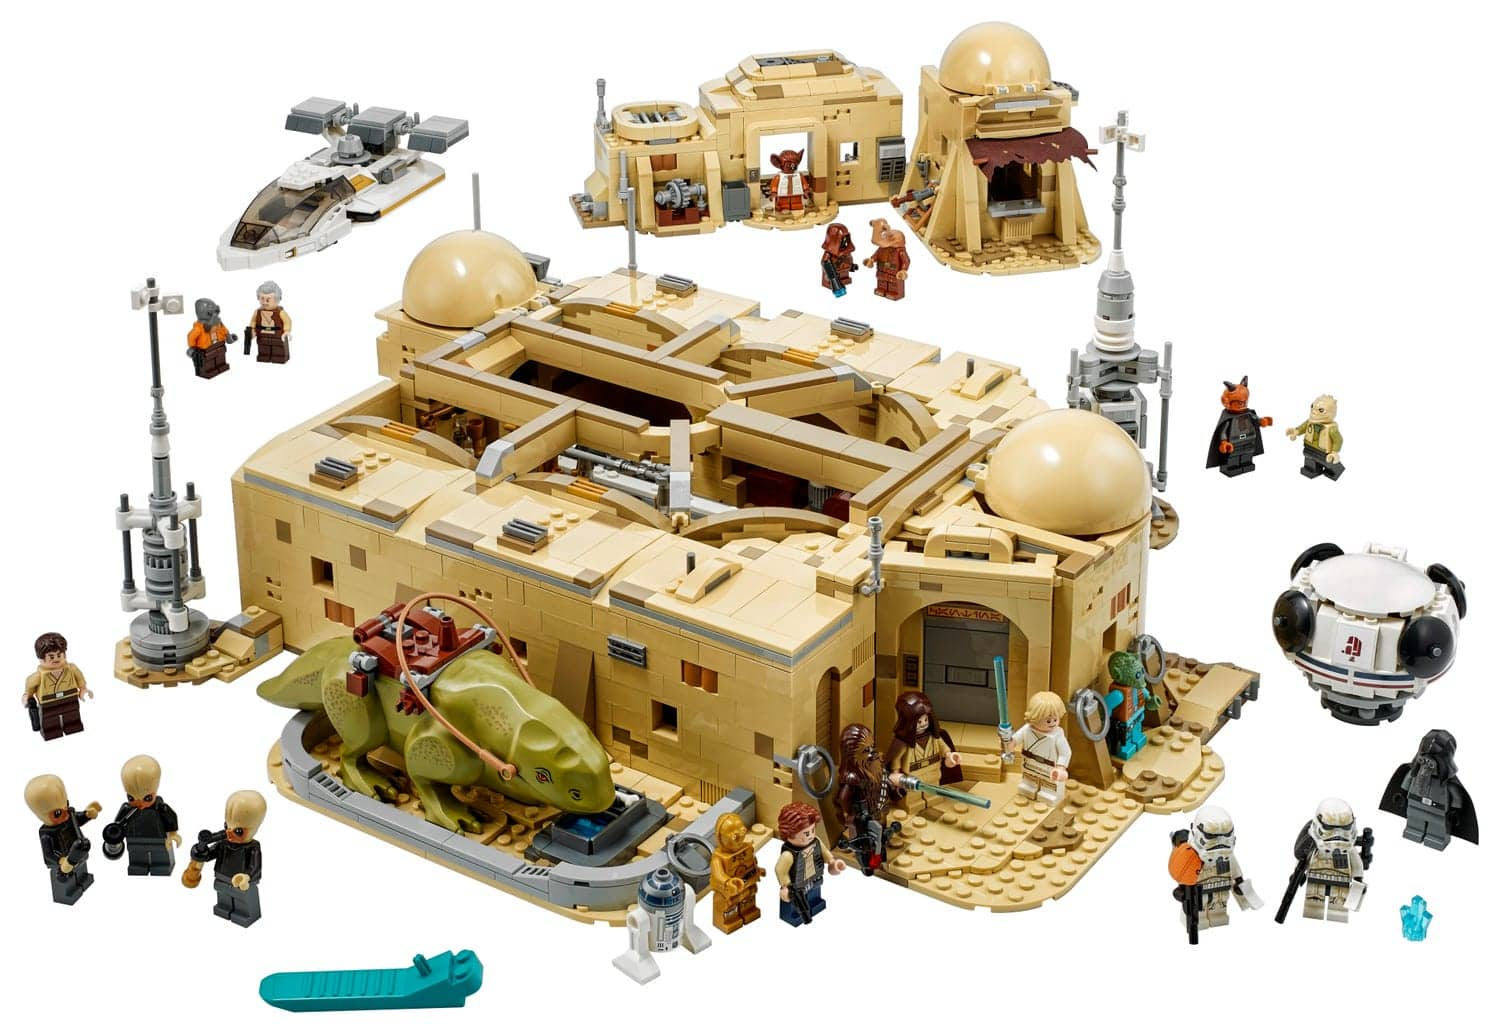 LEGO Mos Eisely Cantina 75290 Backorder available on LEGO.com $350